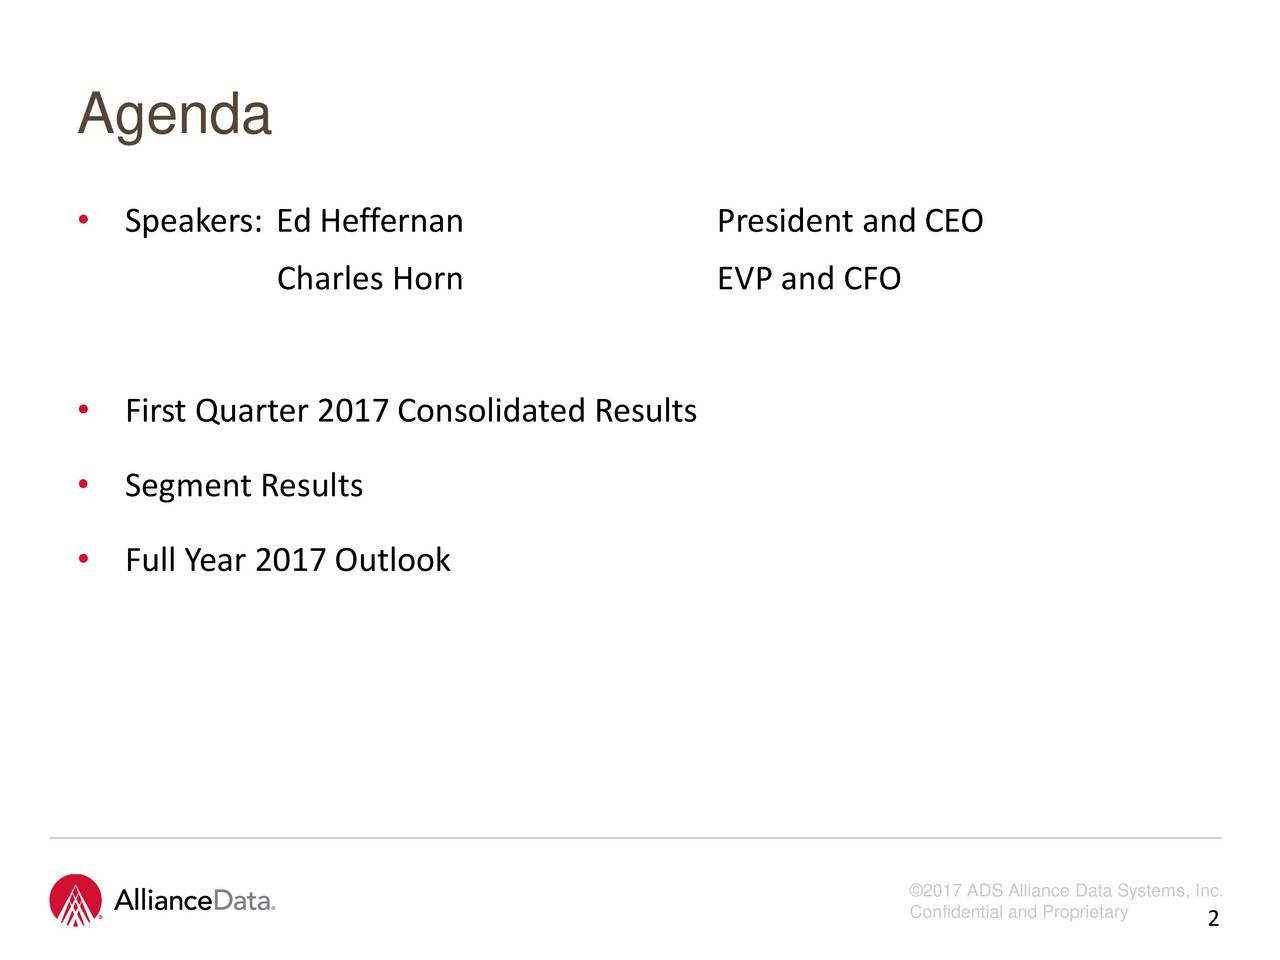 Agenda Speakers: Ed Heffernan President and CEO Charles Horn EVP and CFO First Quarter 2017 Consolidated Results Segment Results Full Year 2017 Outlook 2017 ADS Alliance Data Systems, Inc. Confidential and Pro2rietary